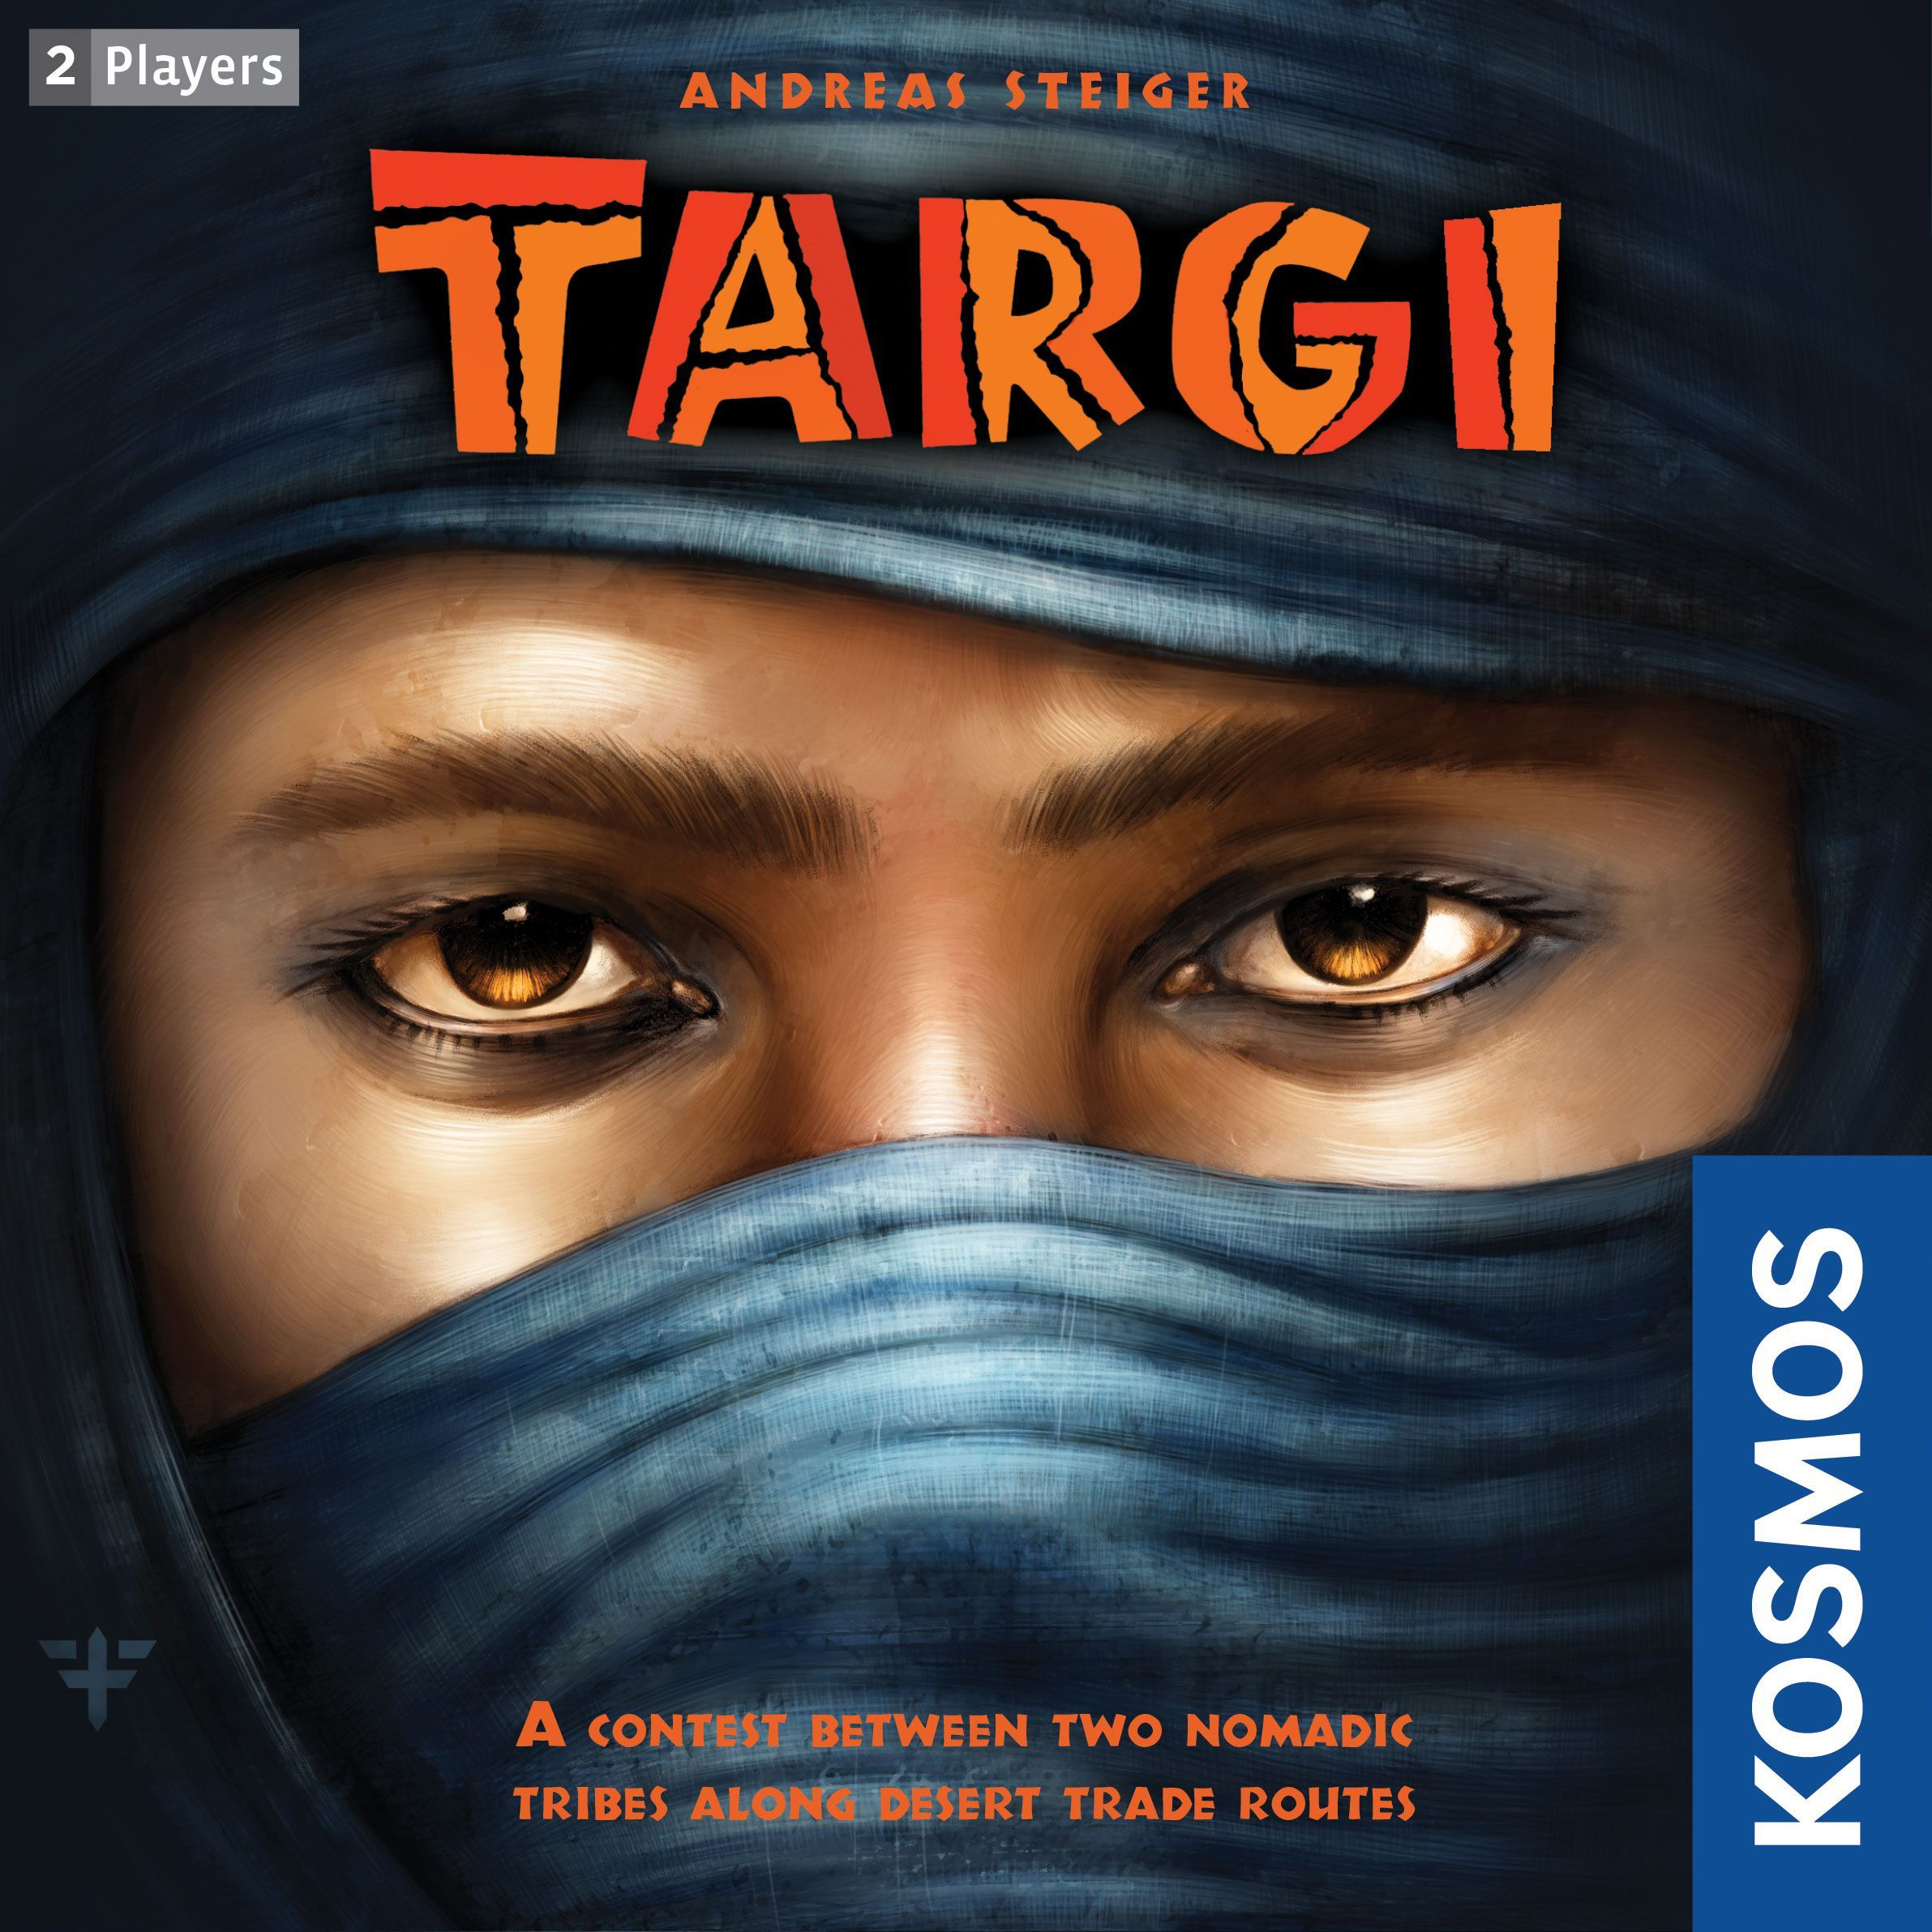 Main image for Targi